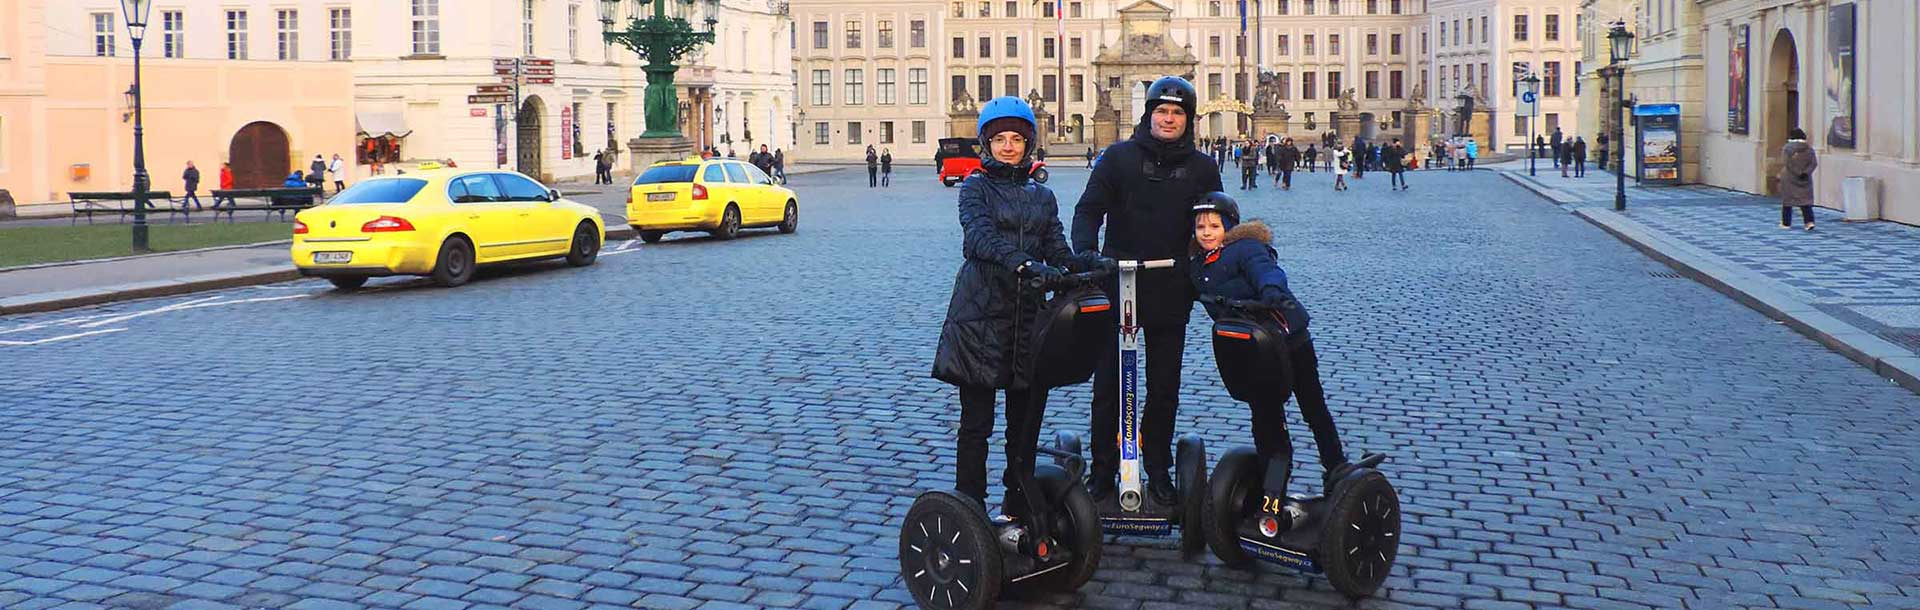 Castle Segway Tour